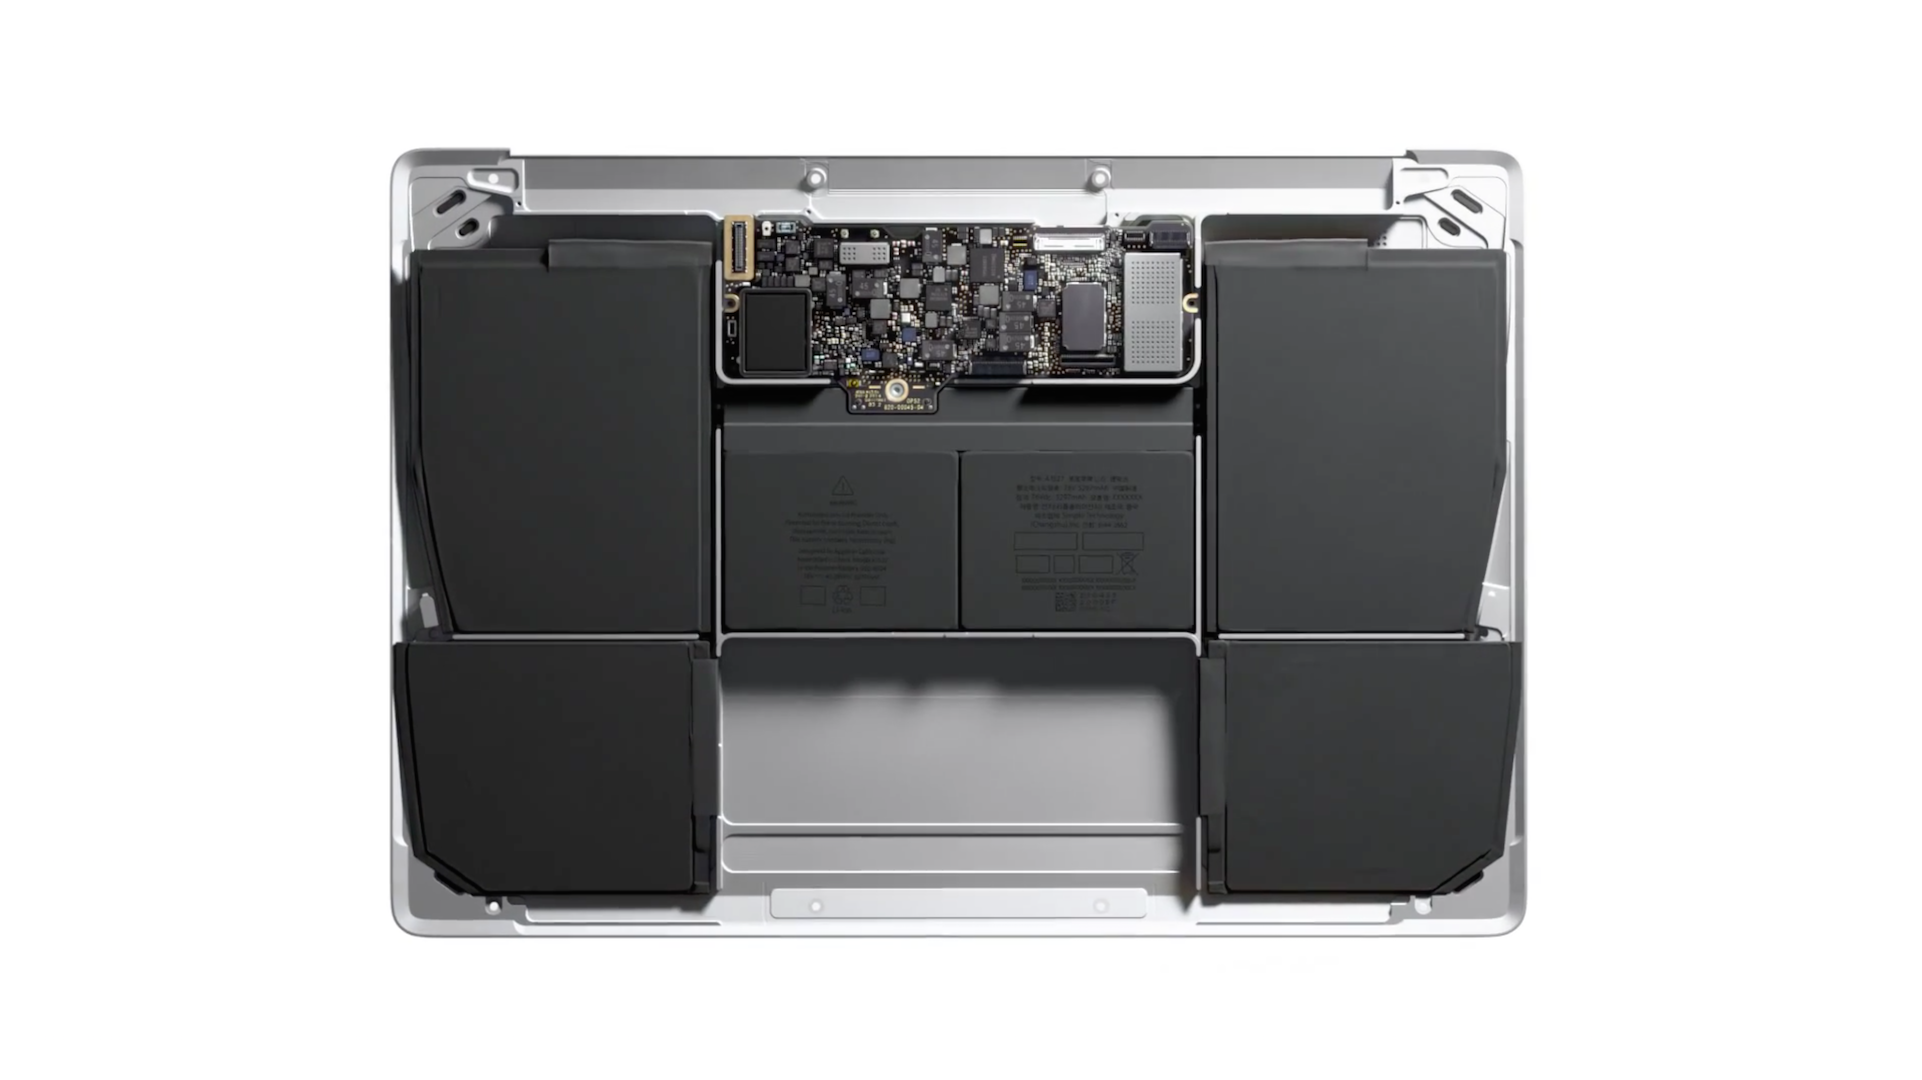 The new MacBook MB-4